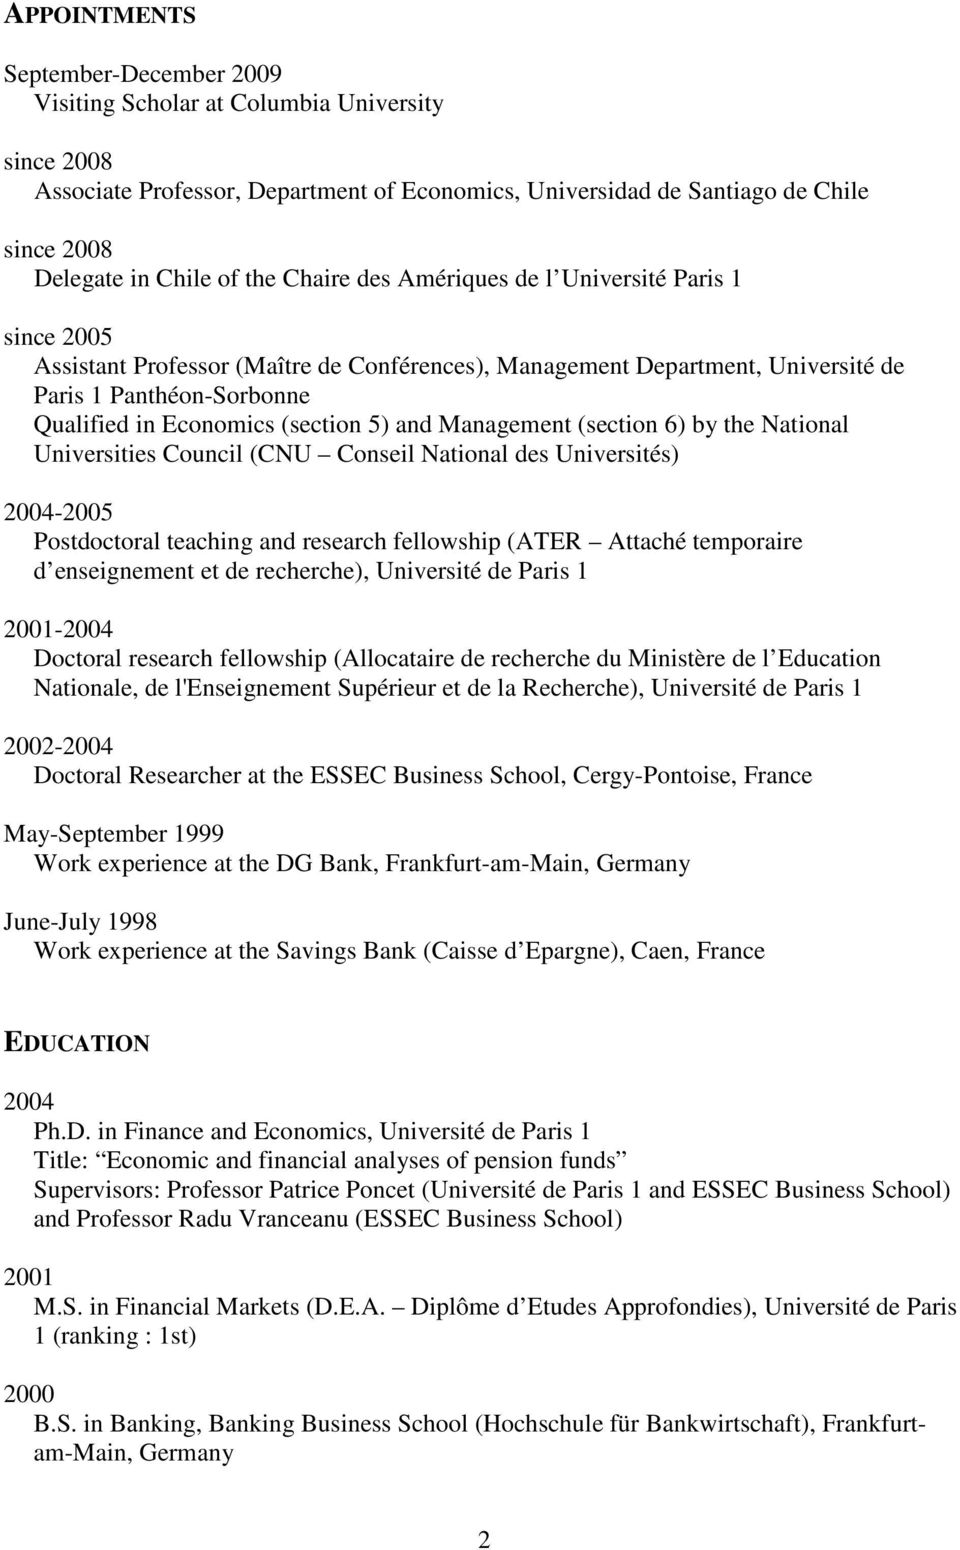 5) and Management (section 6) by the National Universities Council (CNU Conseil National des Universités) 2004-2005 Postdoctoral teaching and research fellowship (ATER Attaché temporaire d